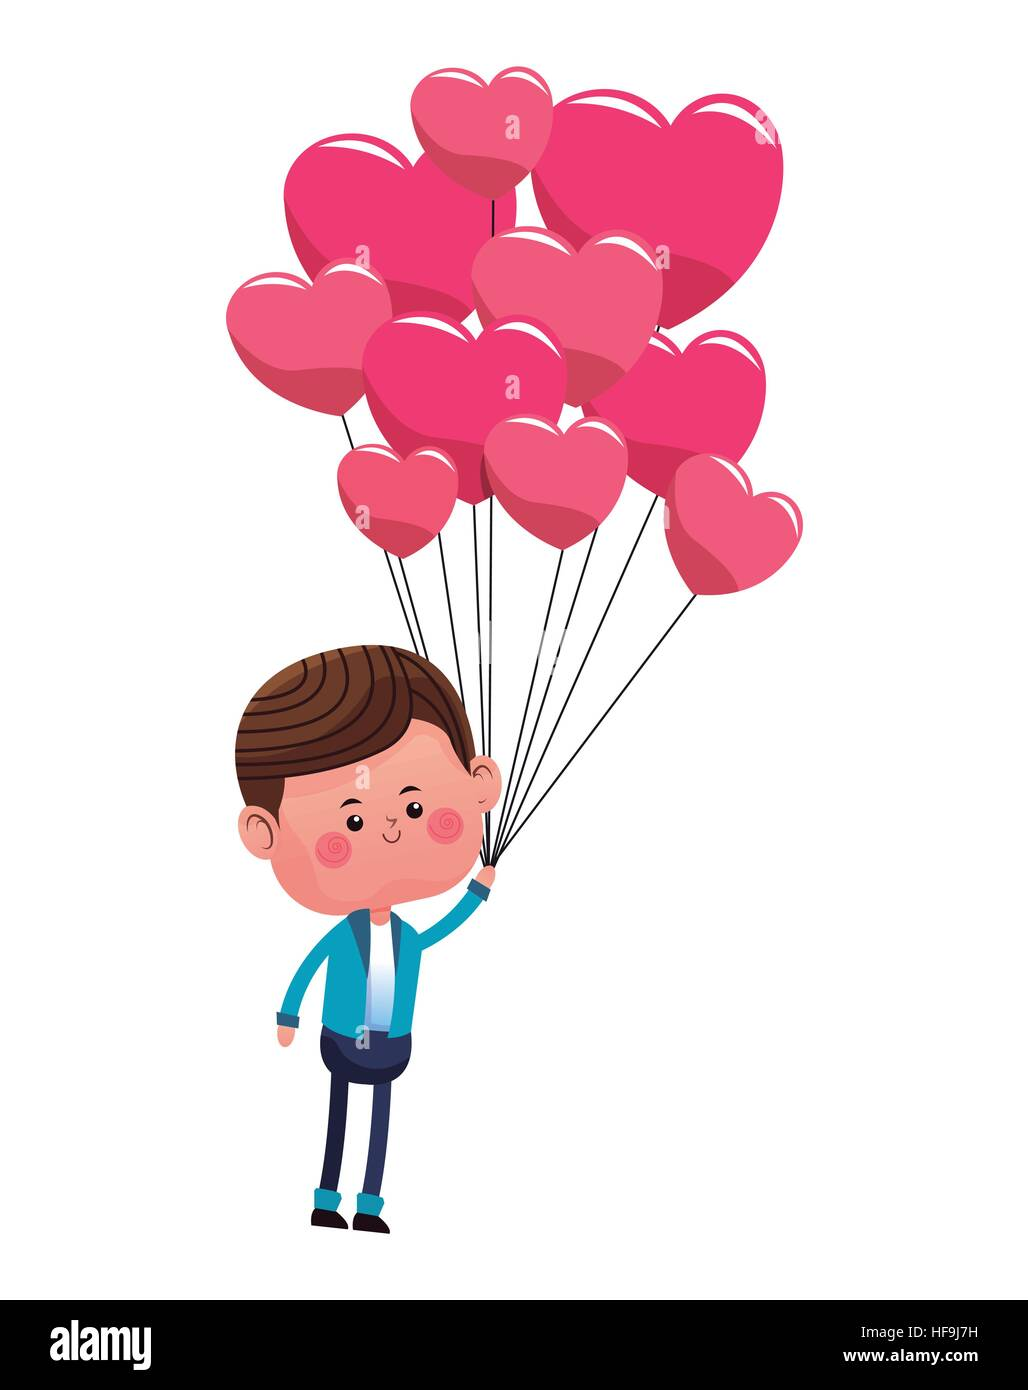 Little Boy Balloon Cut Out Stock Images & Pictures - Alamy